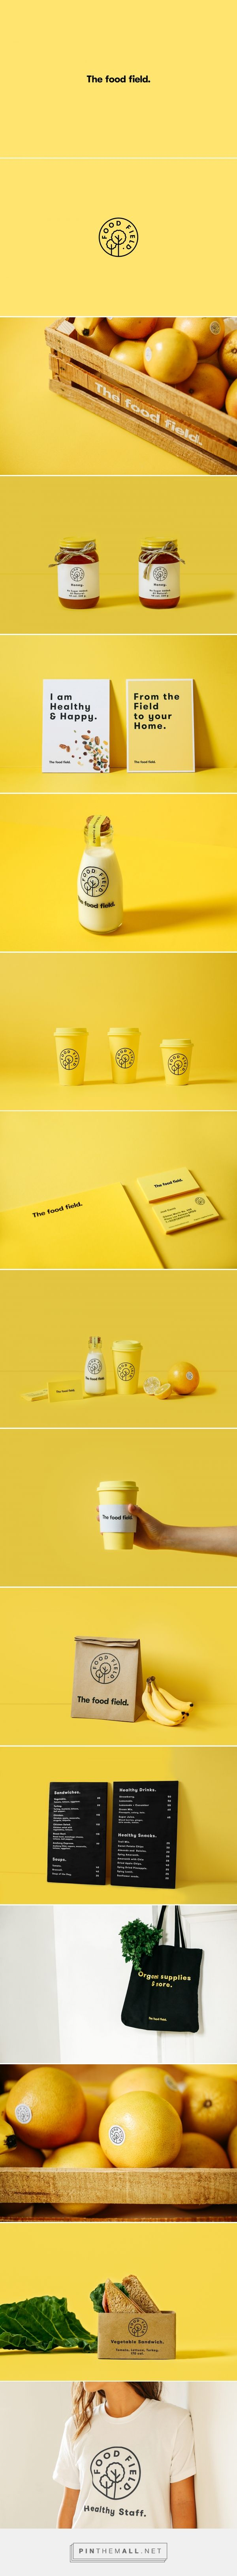 The Food Field. on Behance - created via https://pinthemall.net